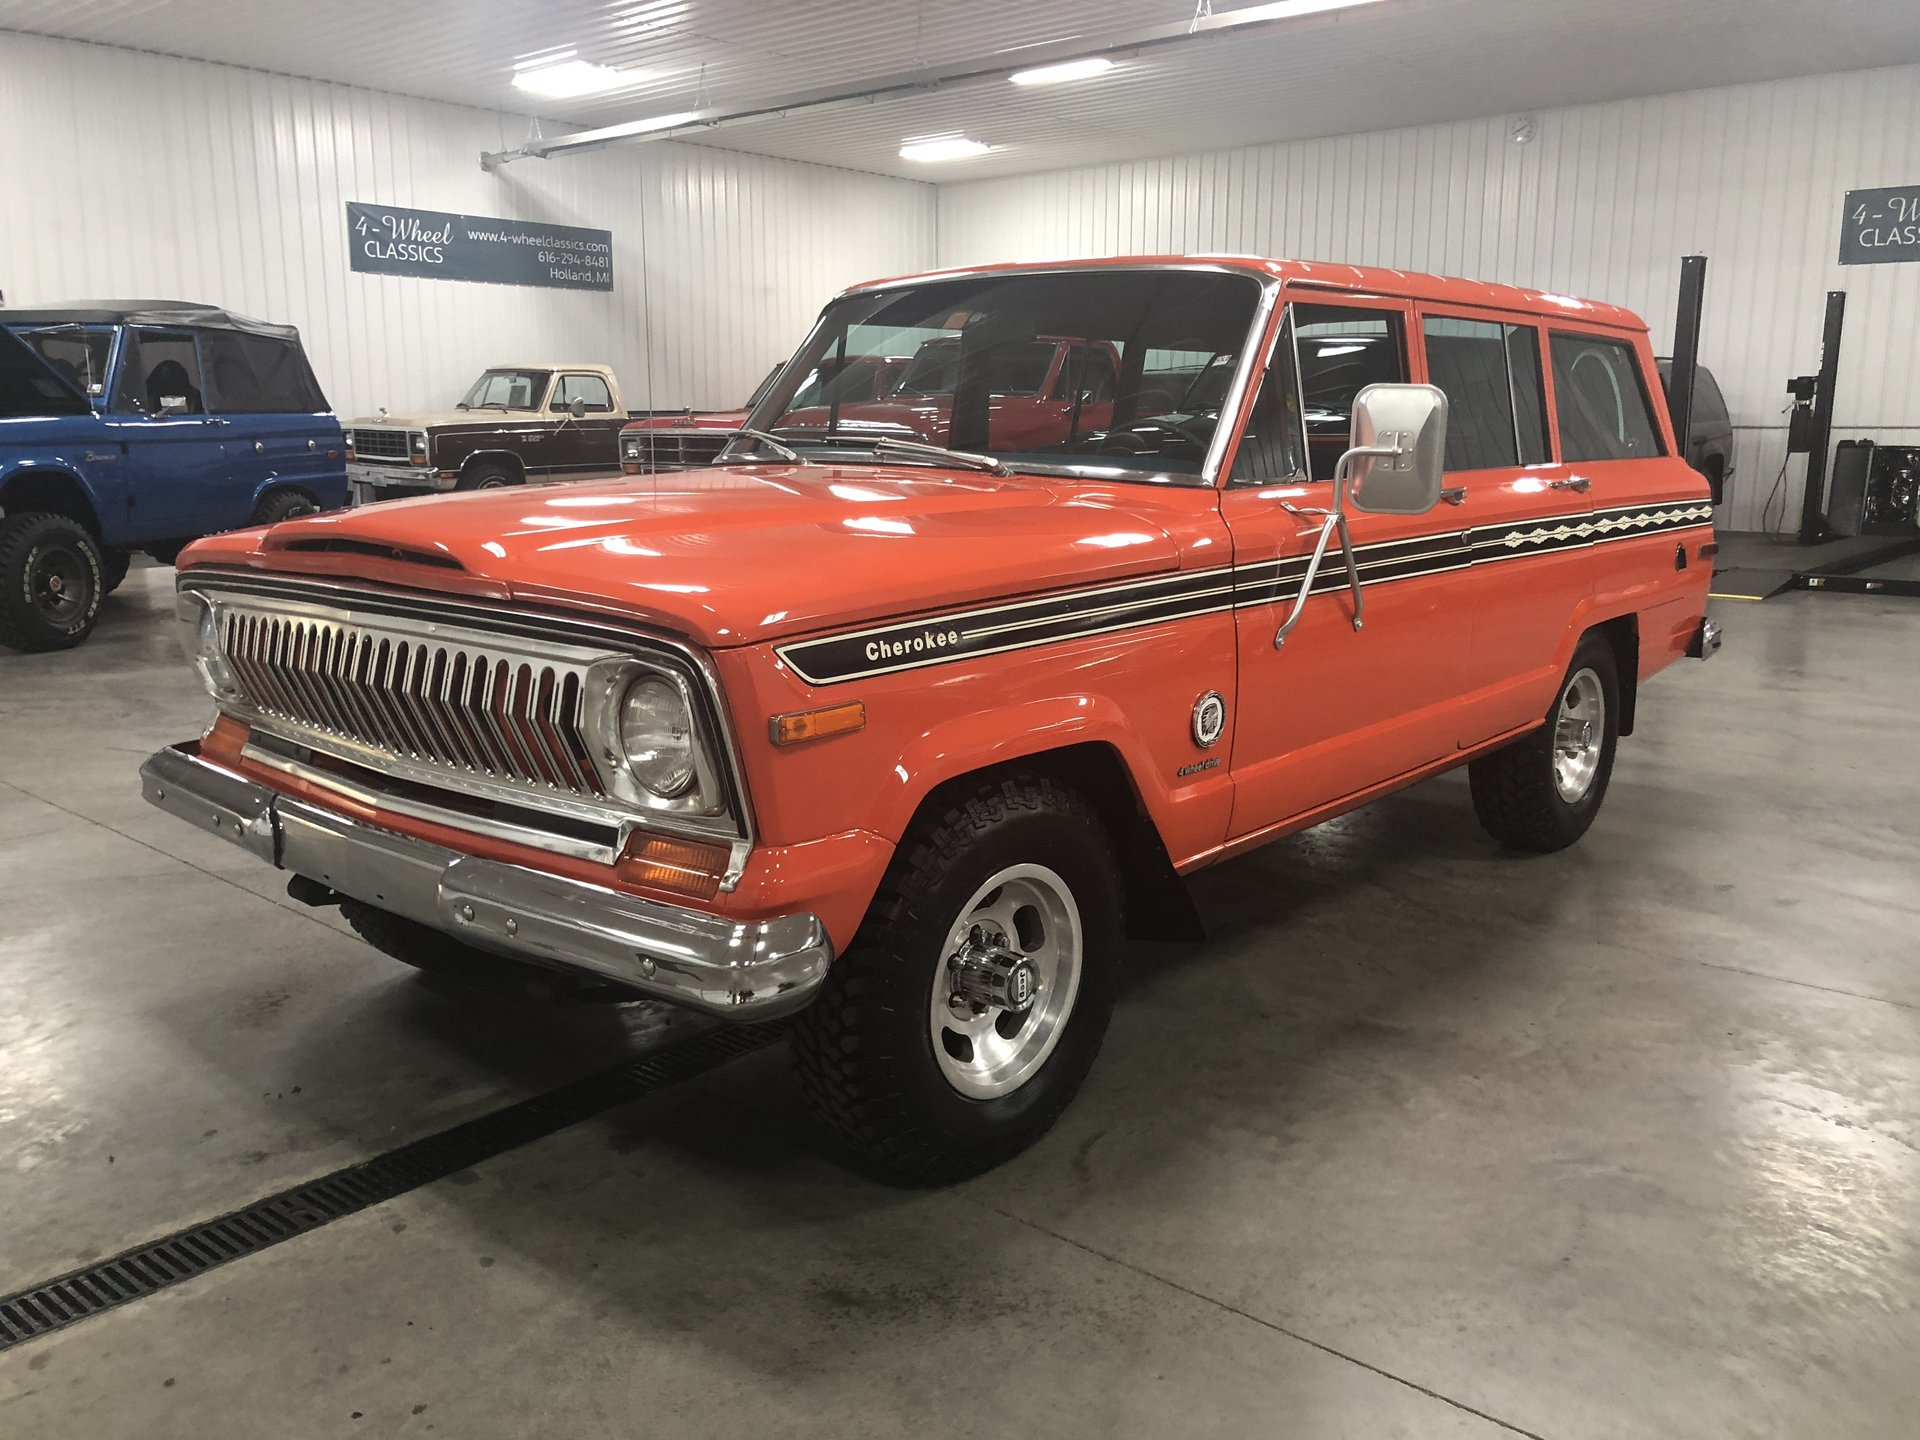 98354deabf94 hd 1978 jeep cherokee